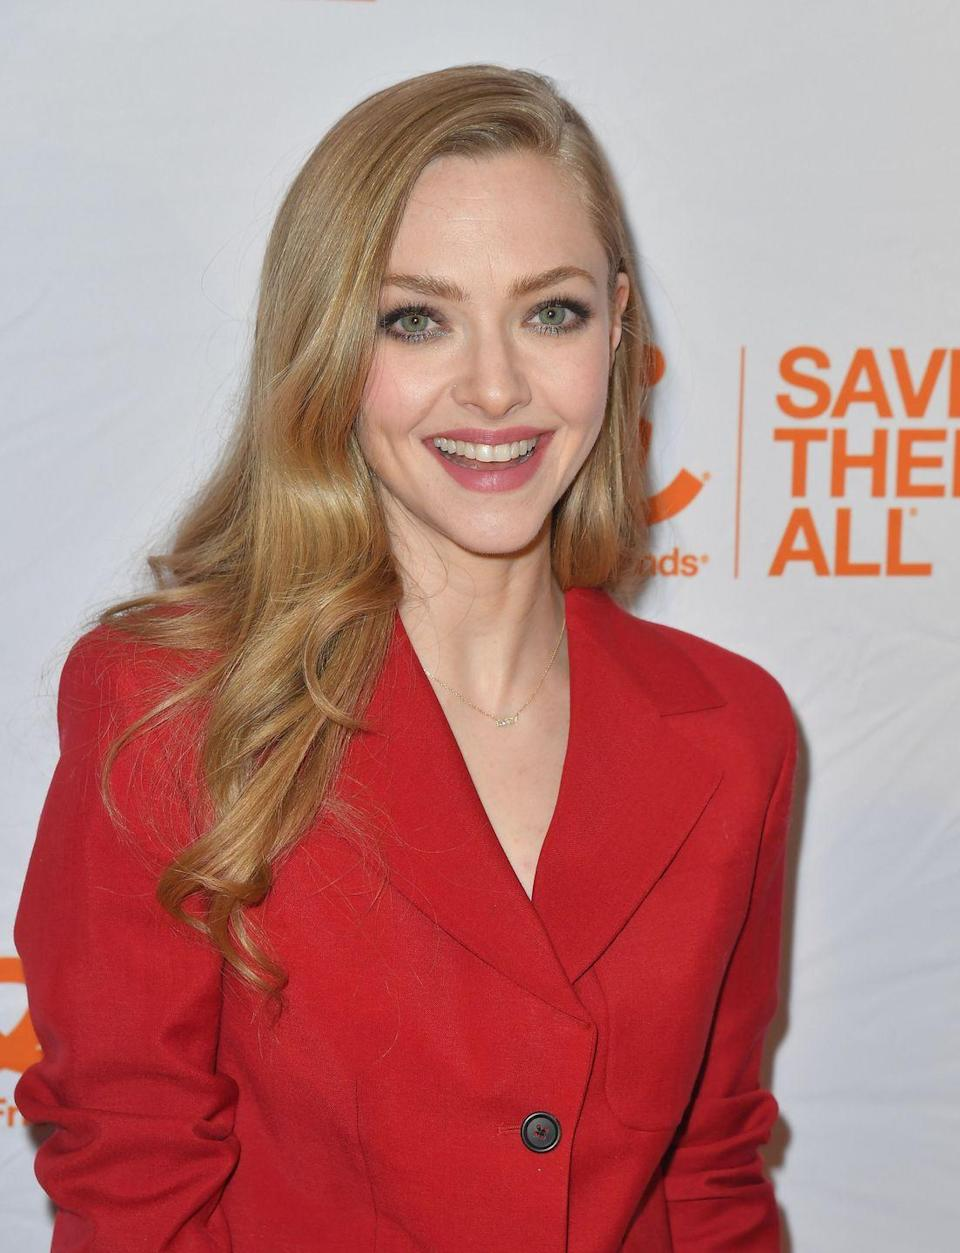 <p>For an all-natural fall hair color idea, stick with one that complements your skin tone. With the same, even shade throughout, actress <strong>Amanda Seyfried</strong>'s fall hair color takes on a cooler tone. </p>